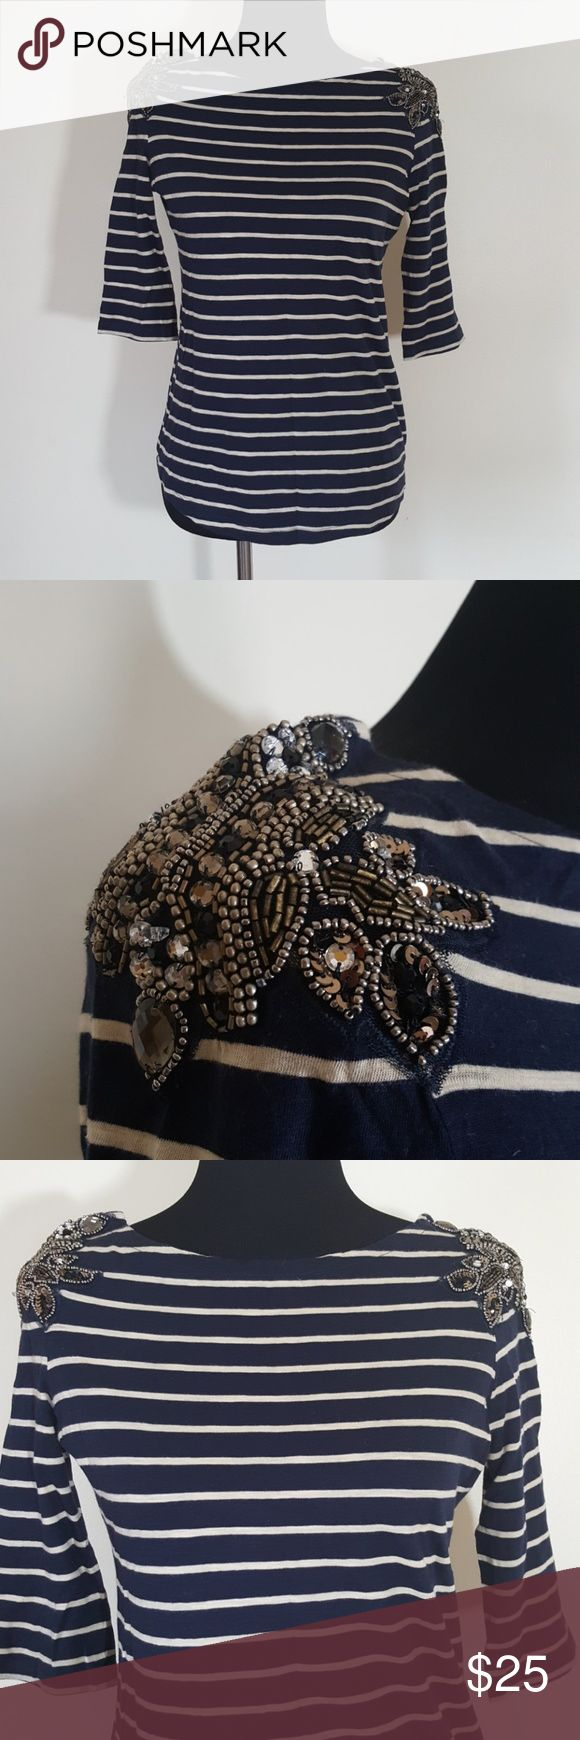 River Island Embellished Nautical Top Size 6 Excellent condition  Beautiful detailing on shoulder  Size 6  3/4 sleeves River Island Tops